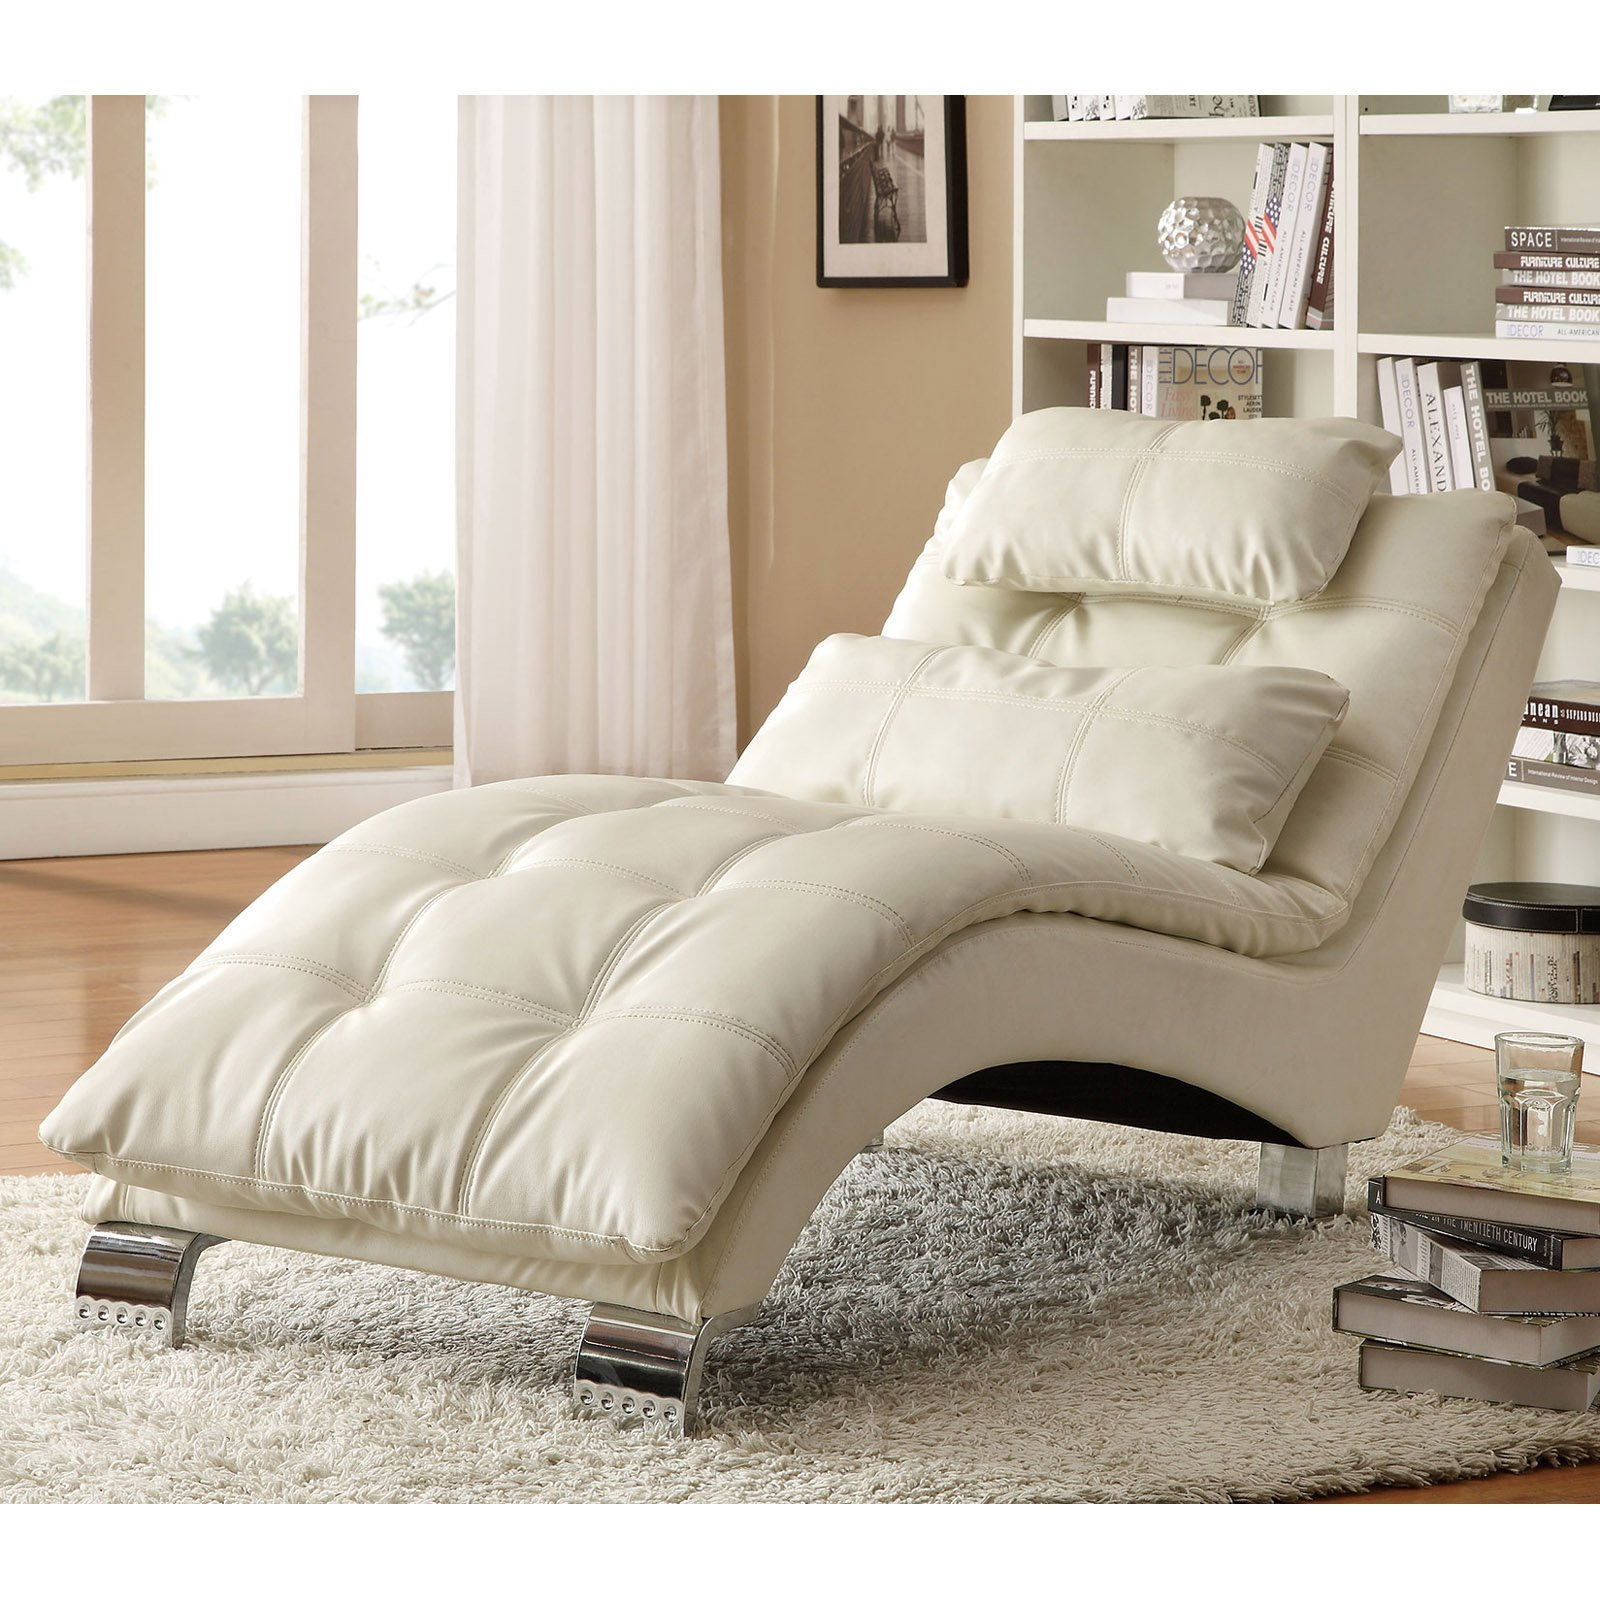 Coaster Furniture Carlsbad Chaise Lounge